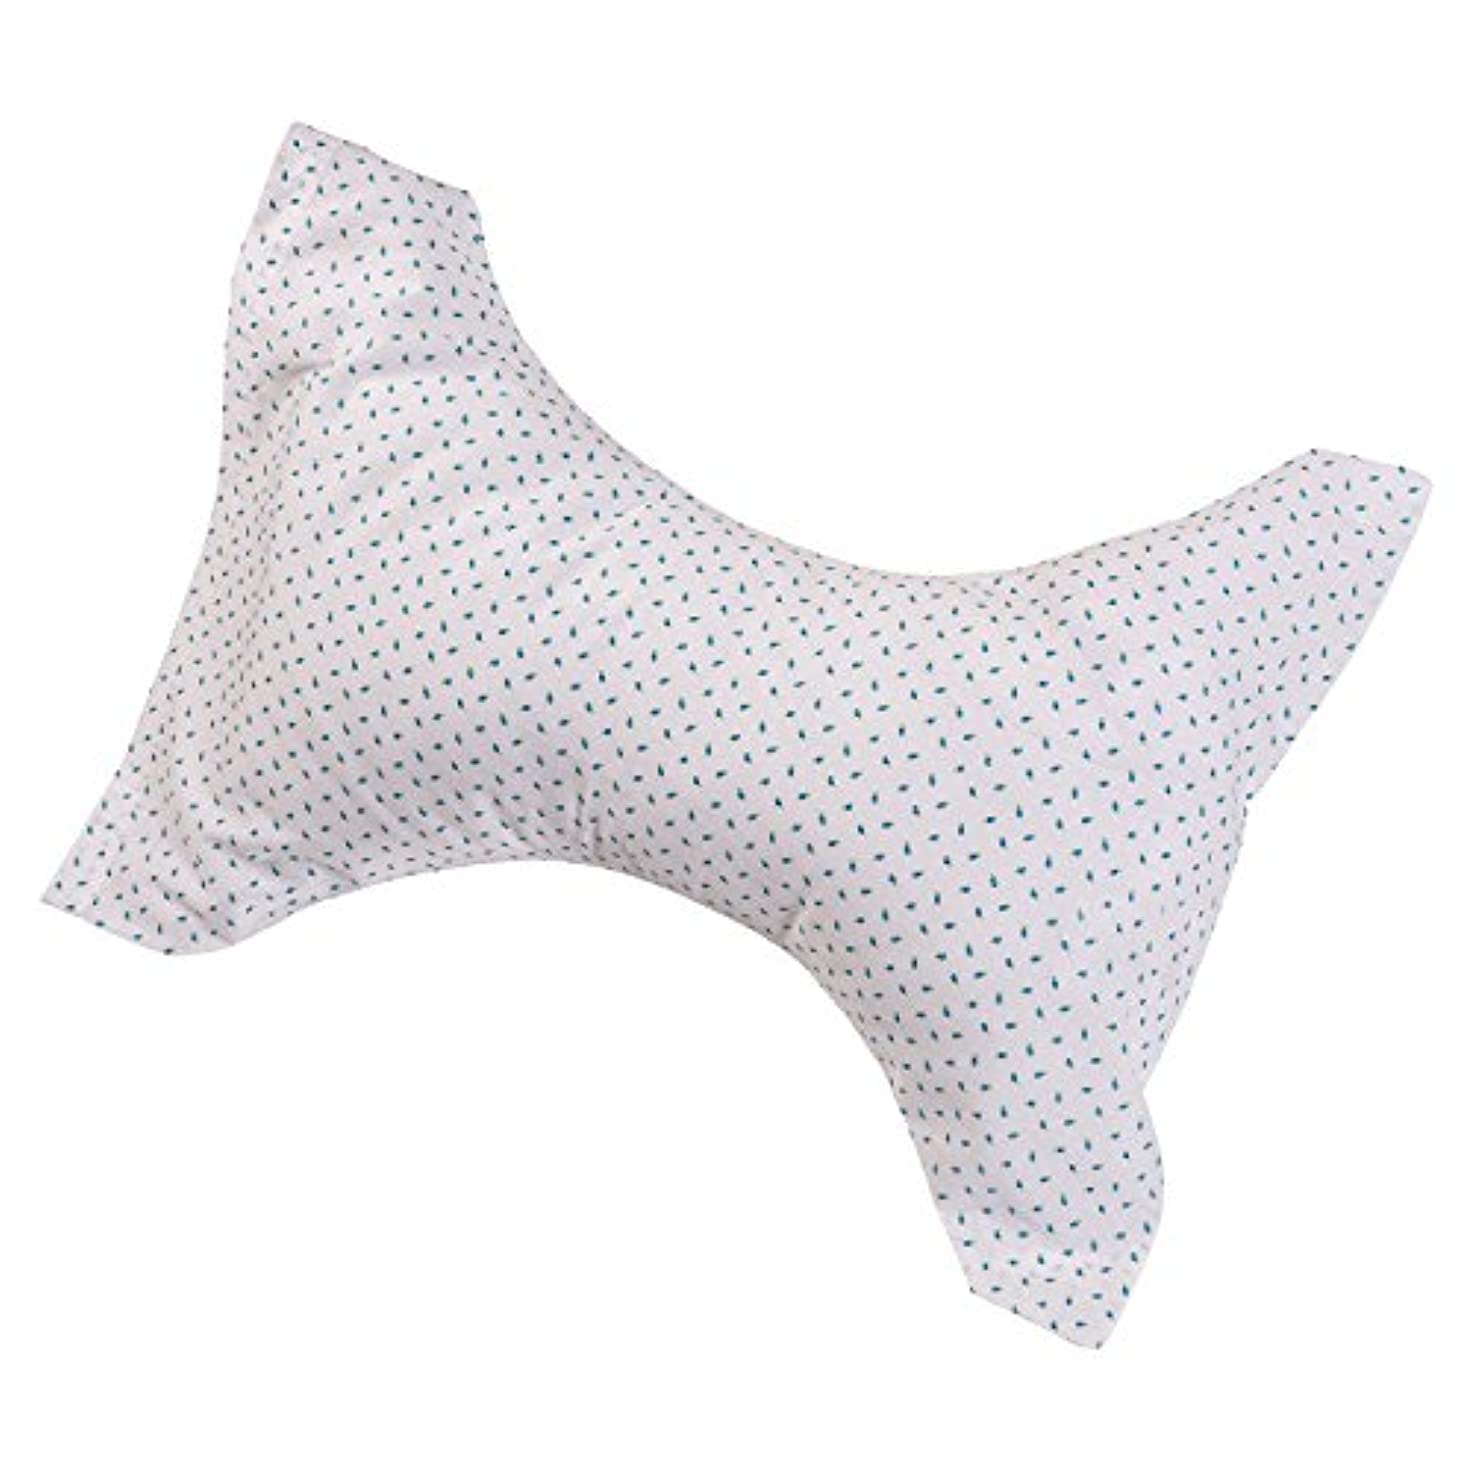 慢な本体リゾートStandard Cervical Rest Pillow, Rosebud 海外直送